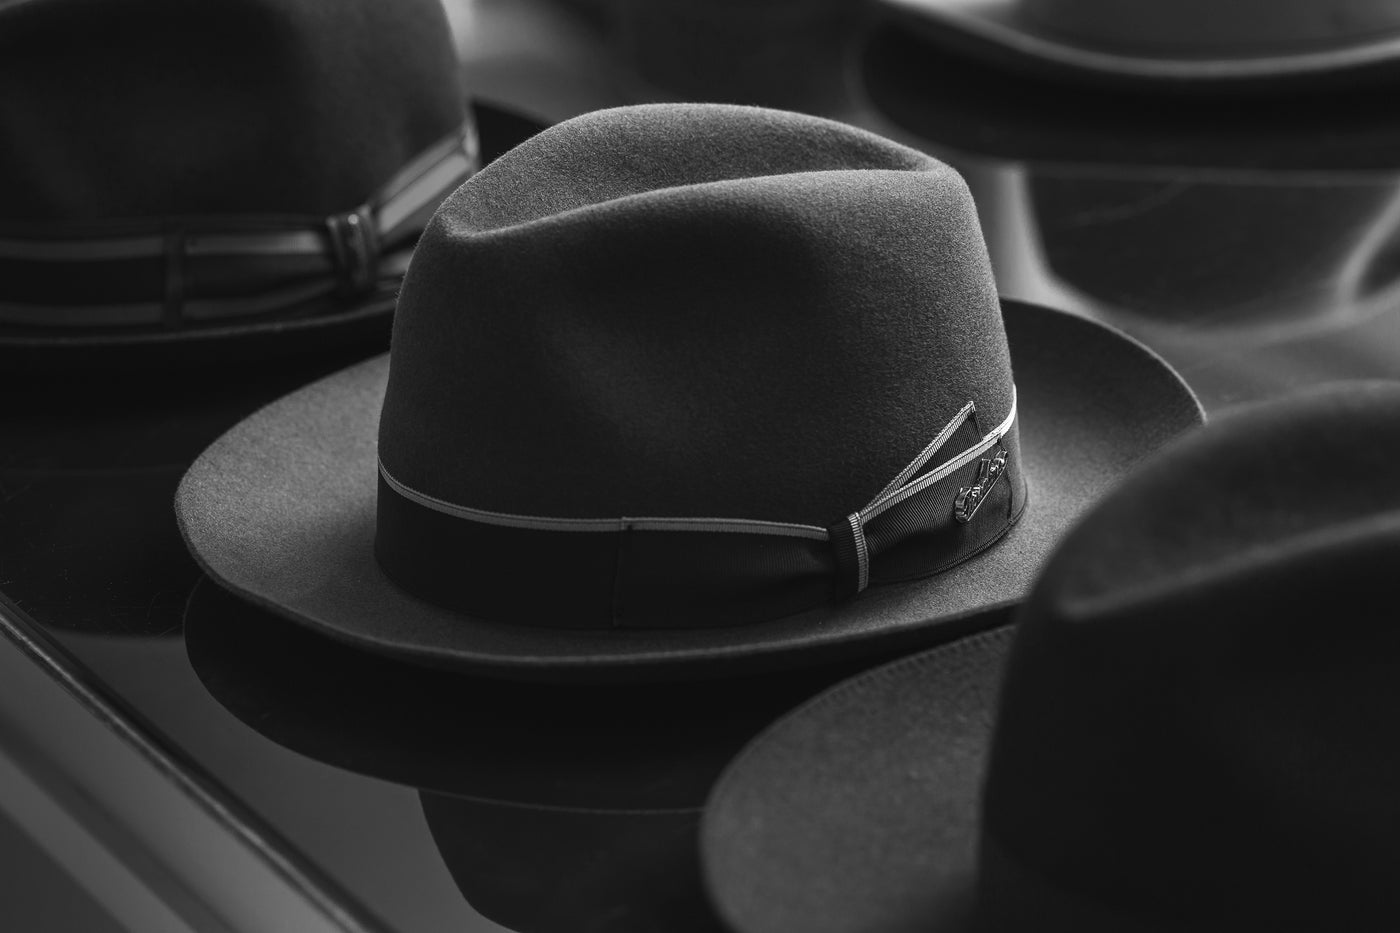 Borsalino for Atica fedora hats for men in black and white.